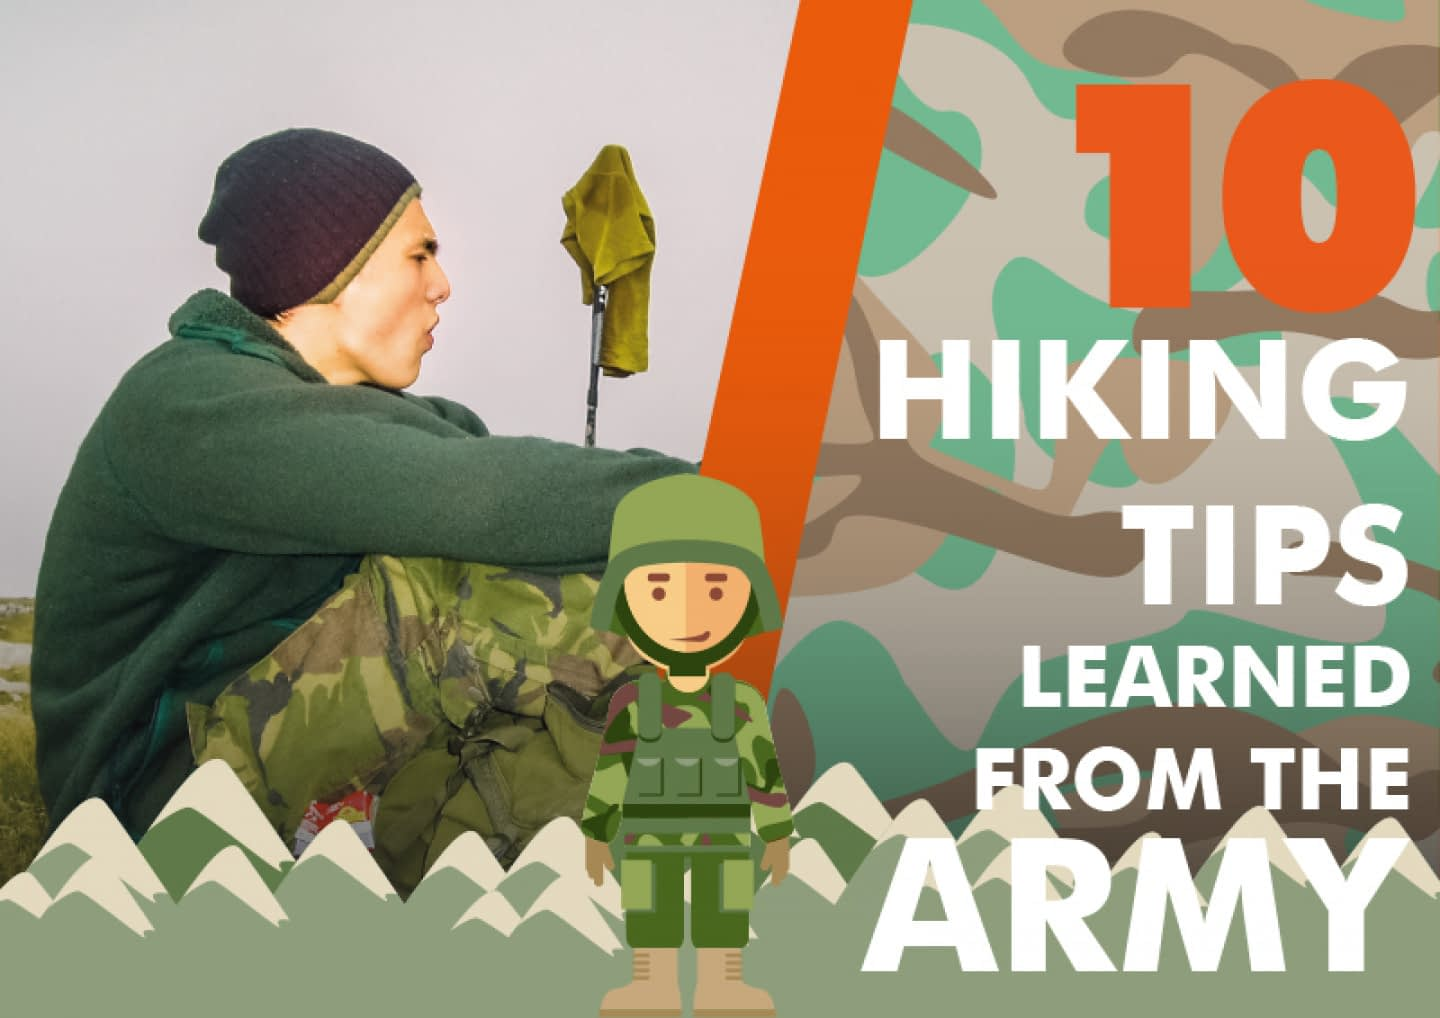 10 hiking tips learned from the army